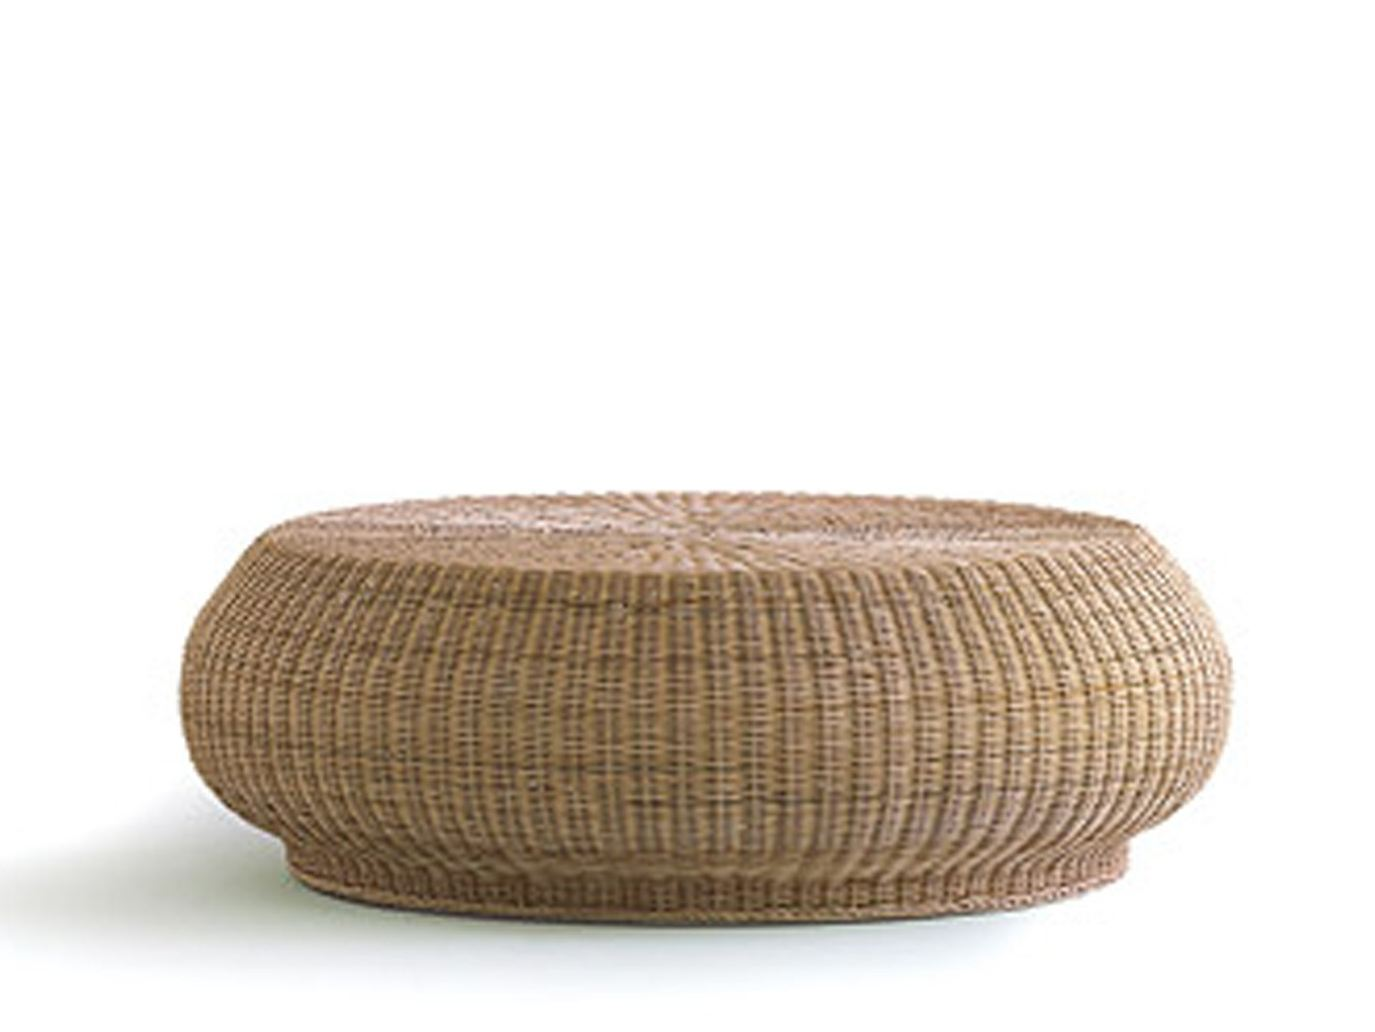 Round Wicker Coffee Table Woven Wicker Round Coffee Table Round Wicker  Coffee Table Glass Top Best